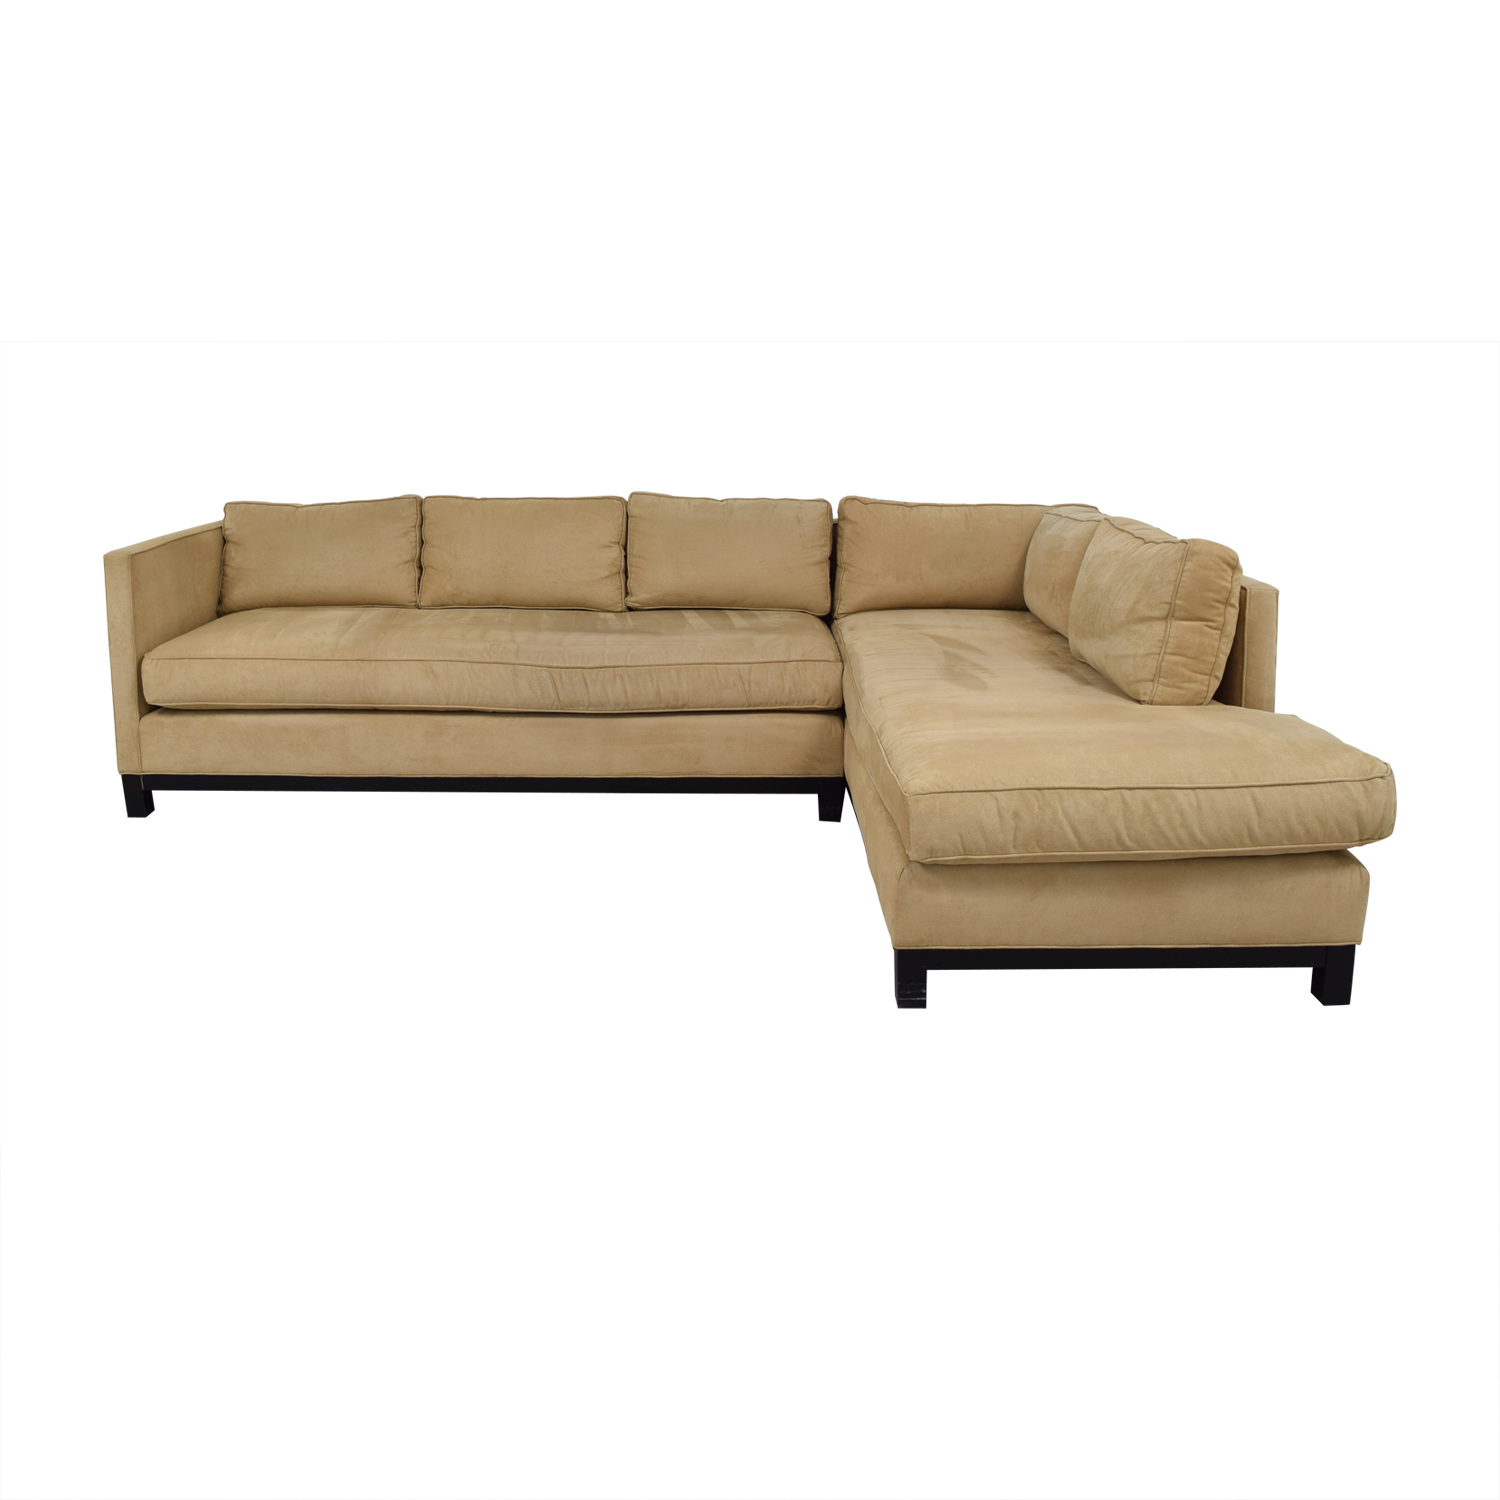 Mitchell Gold + Bob Williams Mitchell Gold + Bob Williams Clifton Left Sectional price